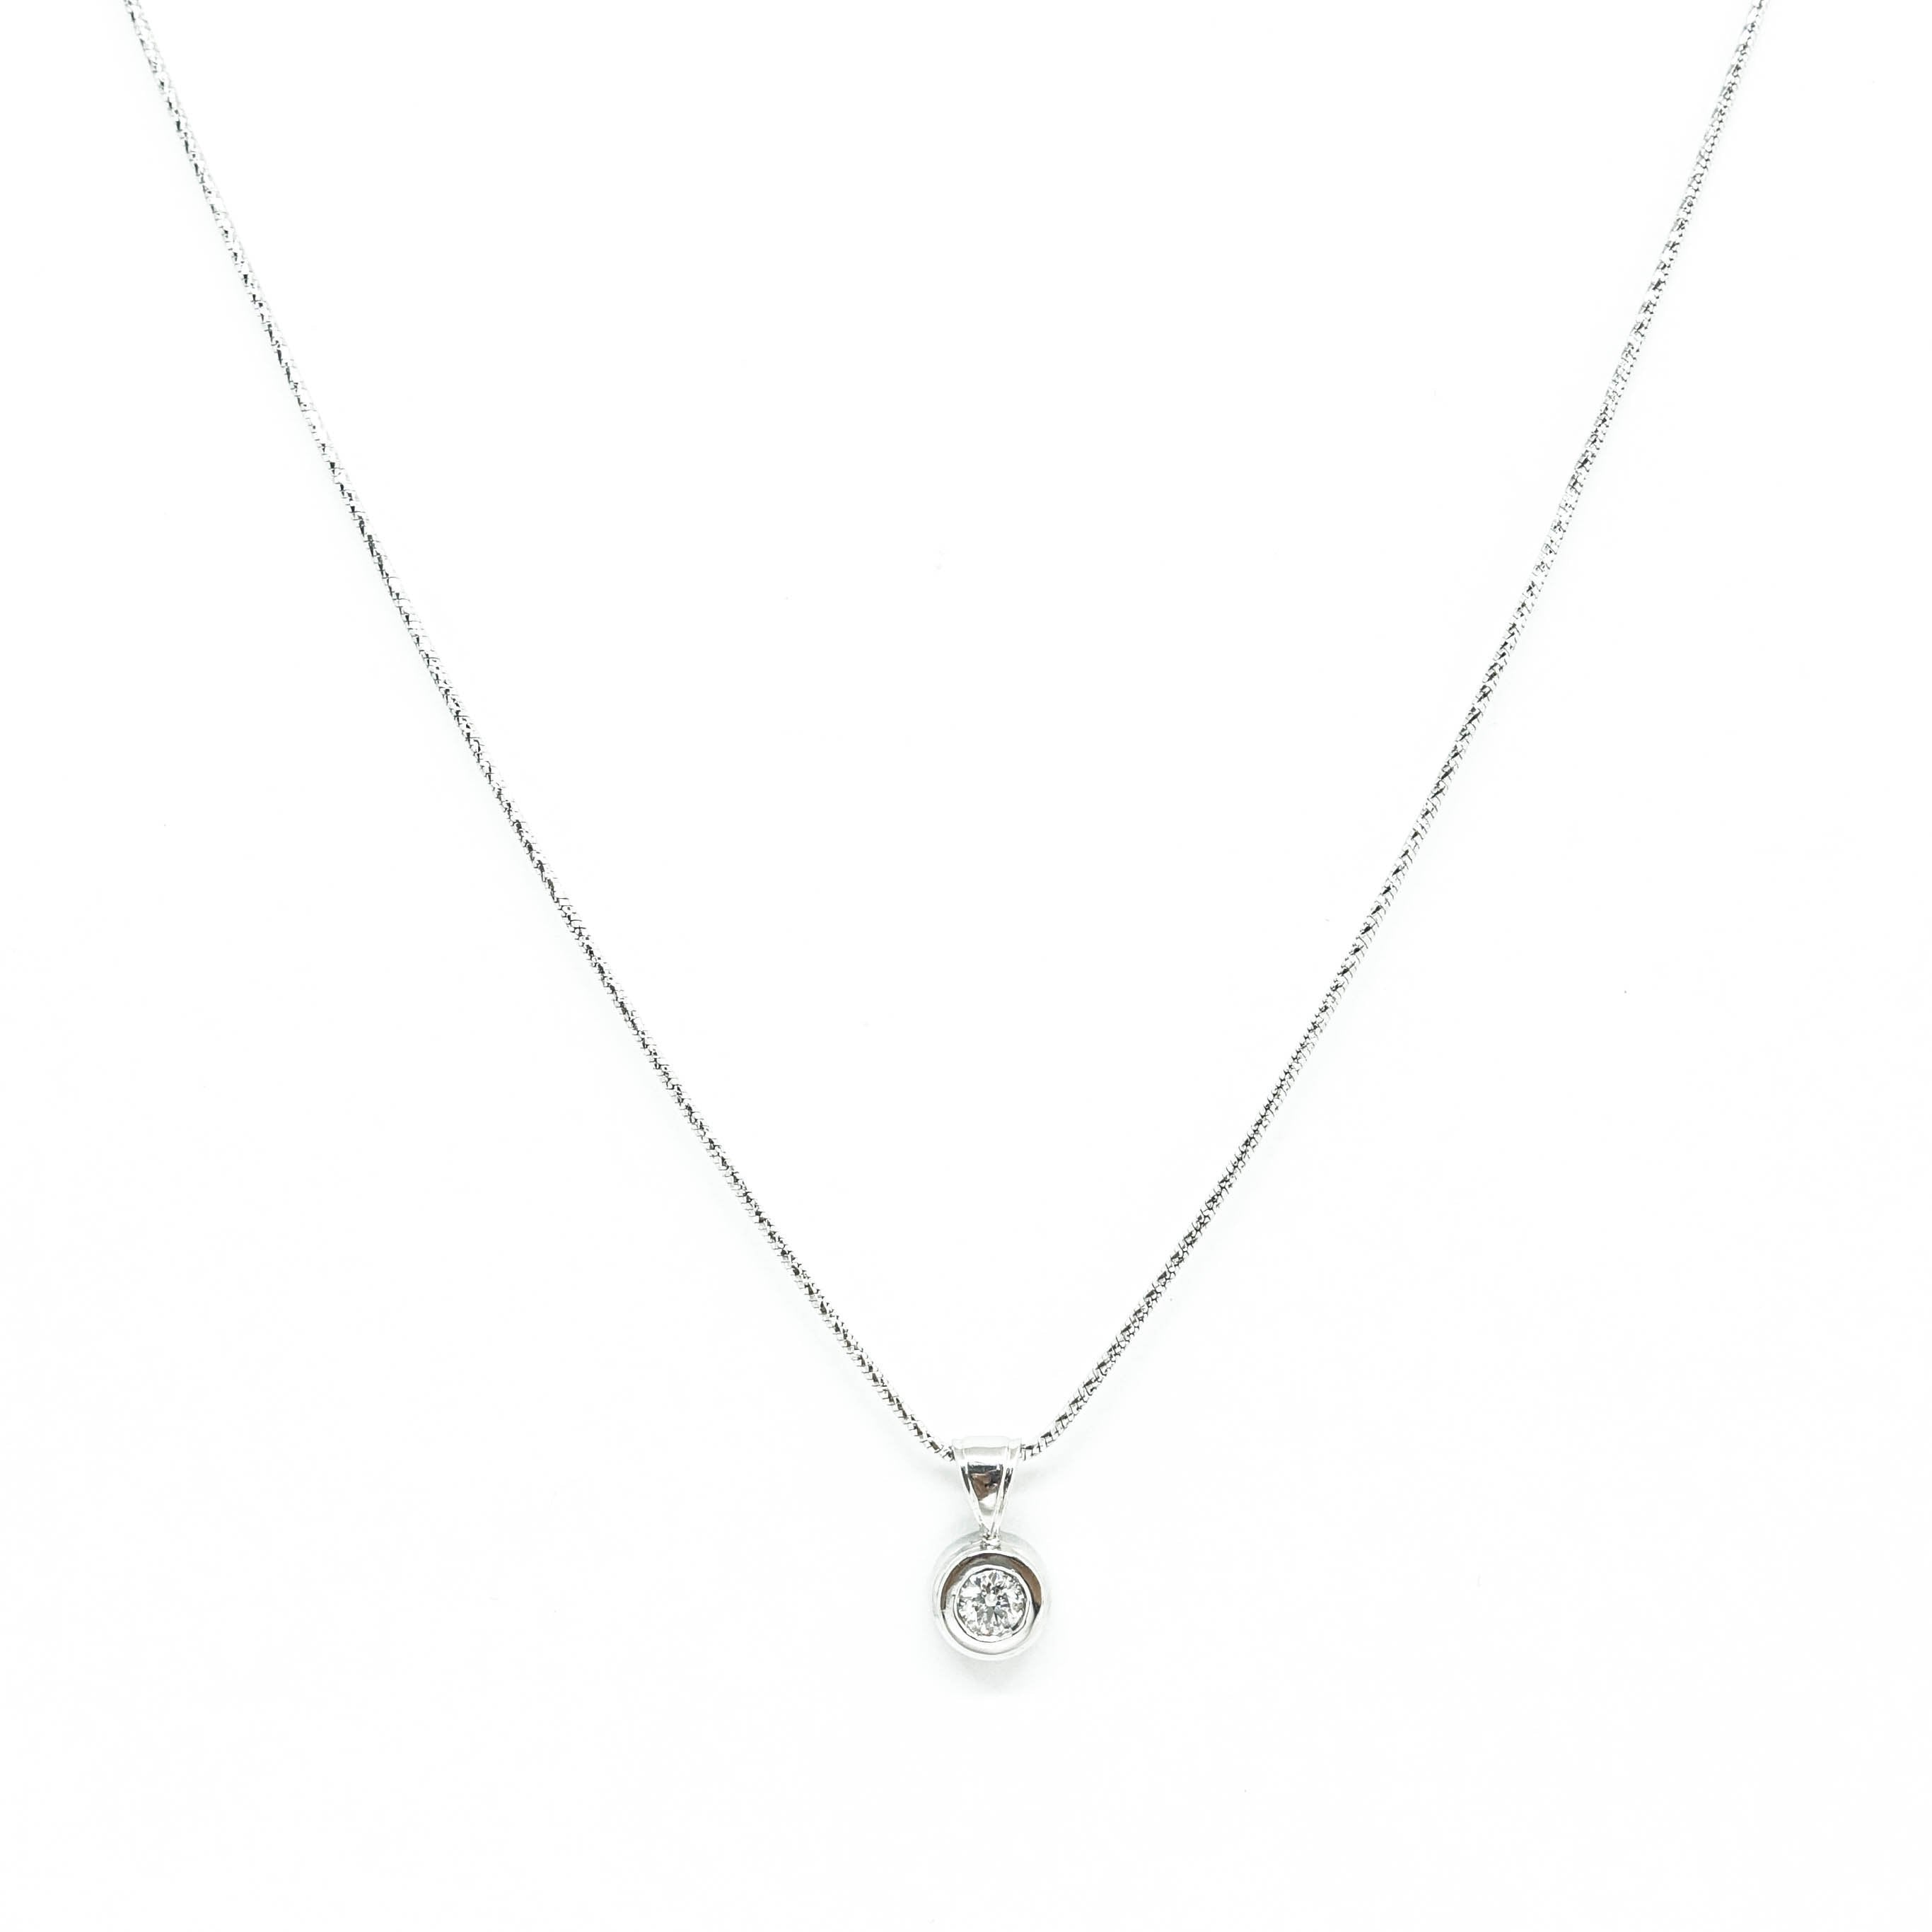 inch pendant brilliant co tiffany solitaire diamond h necklace logo chain products round